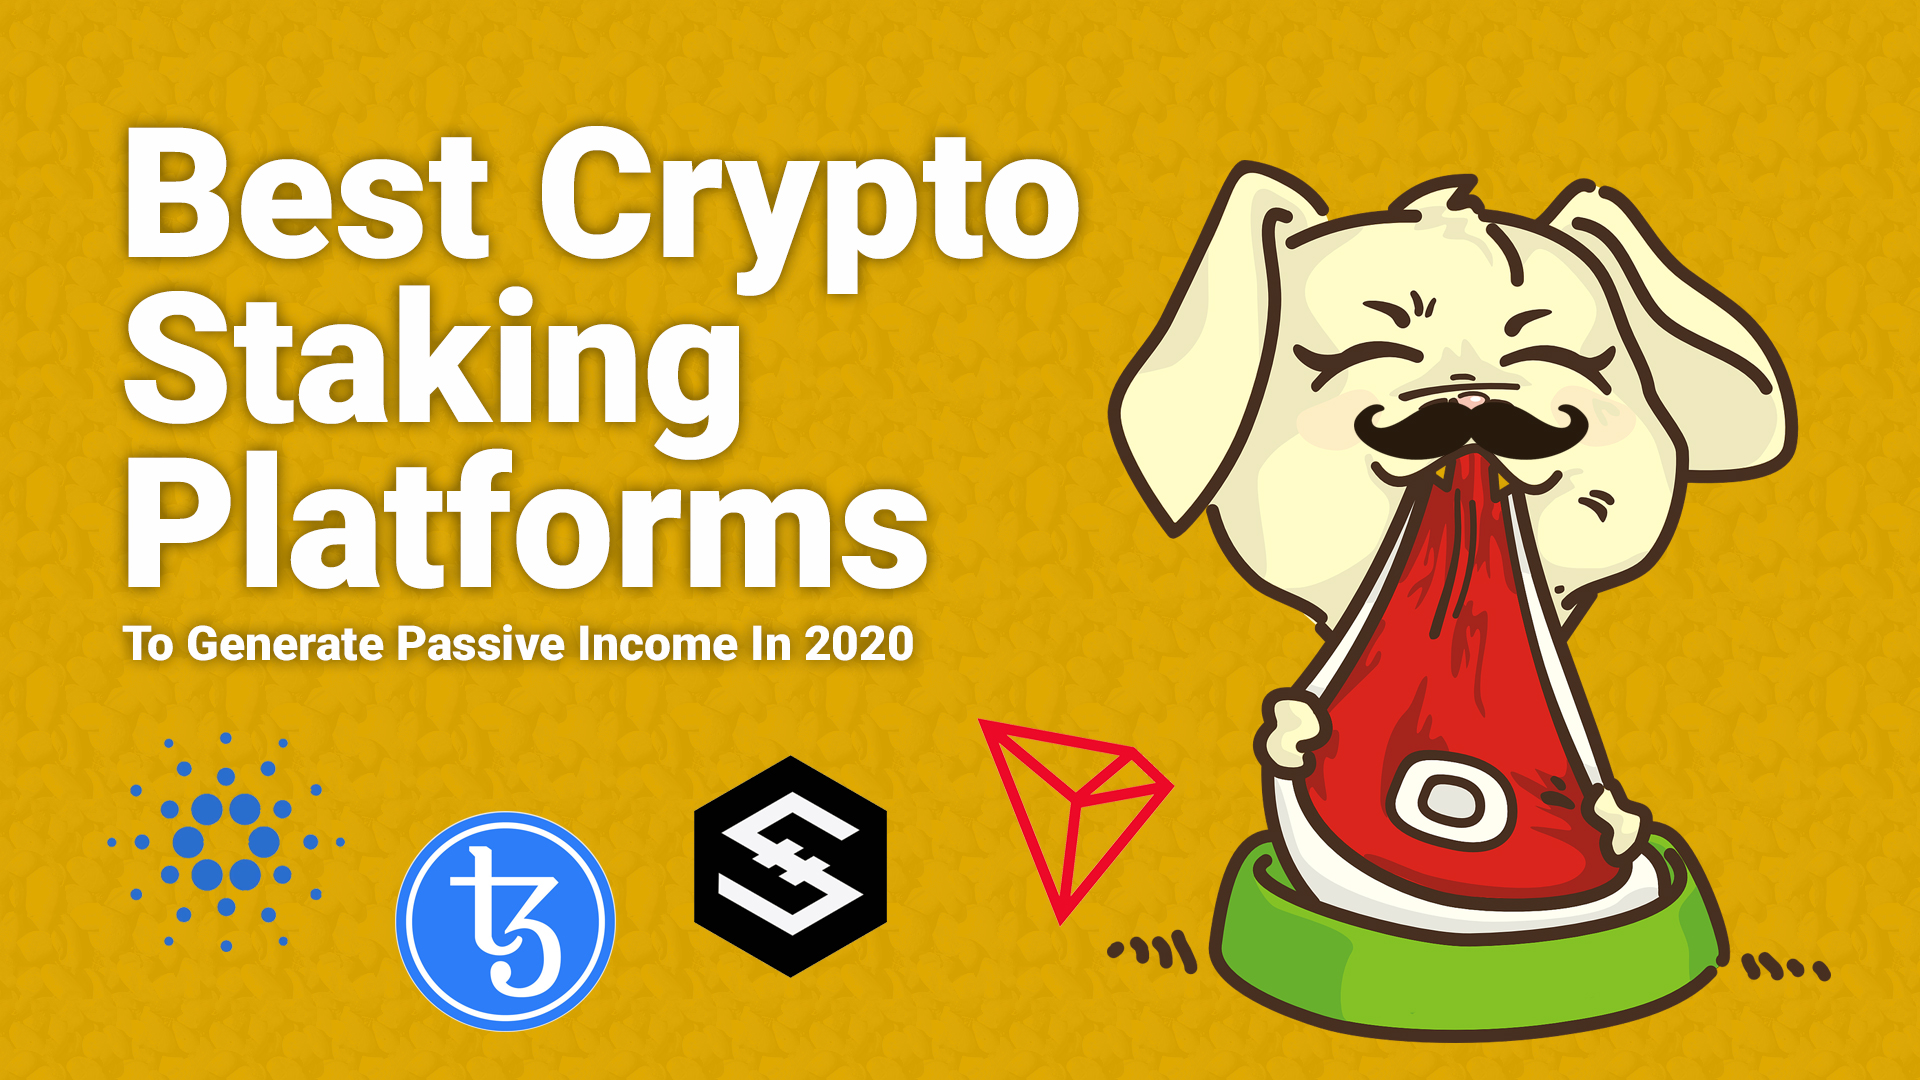 Best Cryptocurrency Staking Platforms To Generate Passive Income In 2020